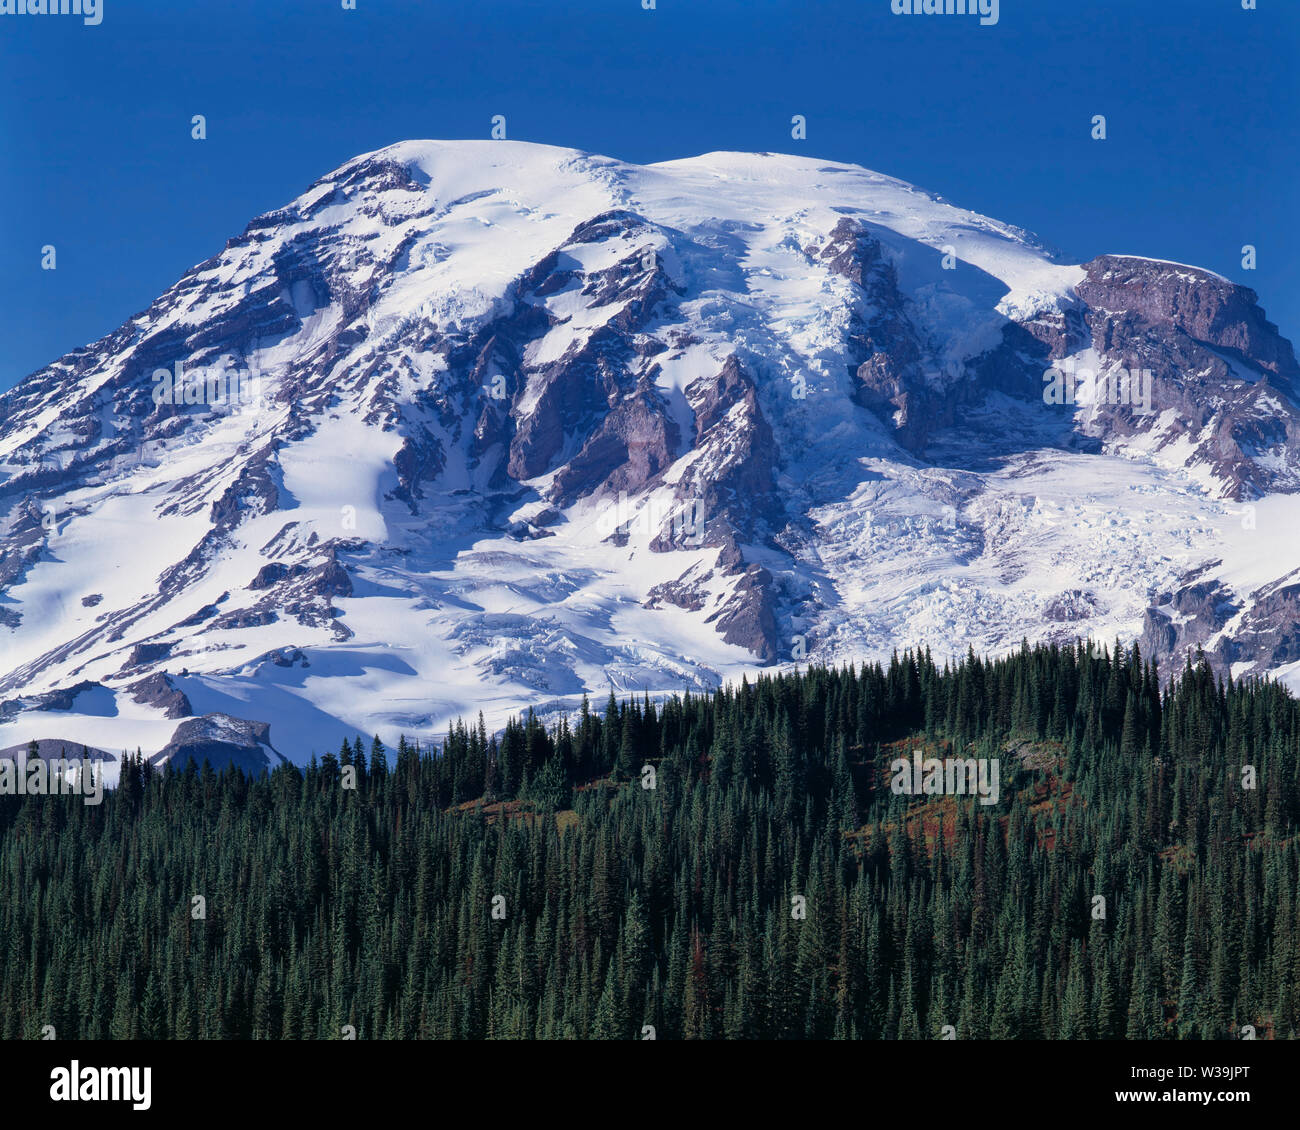 USA, Washington, Mt. Rainier National Park, South side of Mt. Rainier rises about 10,000 ft. above evergreen forest in autumn. Stock Photo